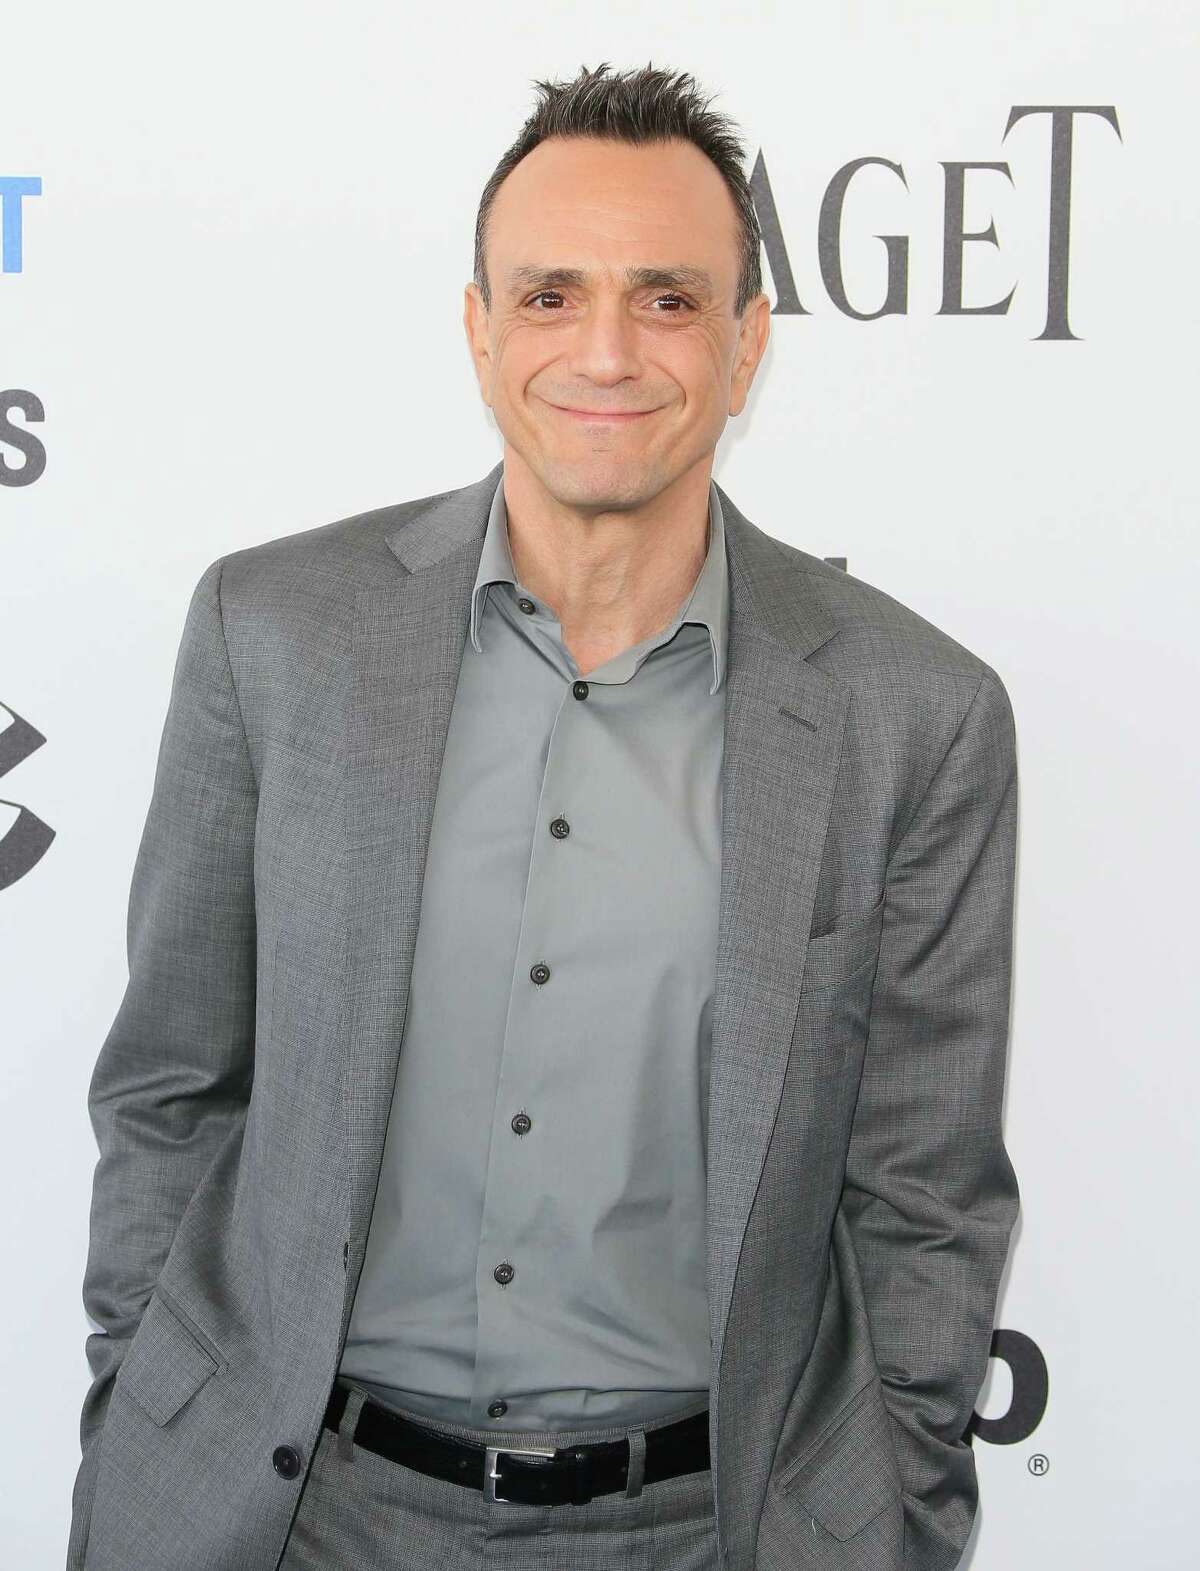 Hank Azaria attends the 2017 Film Independent Spirit Awards in Santa Monica, California, on February 25, 2017. / AFP PHOTO / JEAN-BAPTISTE LACROIXJEAN-BAPTISTE LACROIX/AFP/Getty Images ORG XMIT: 1